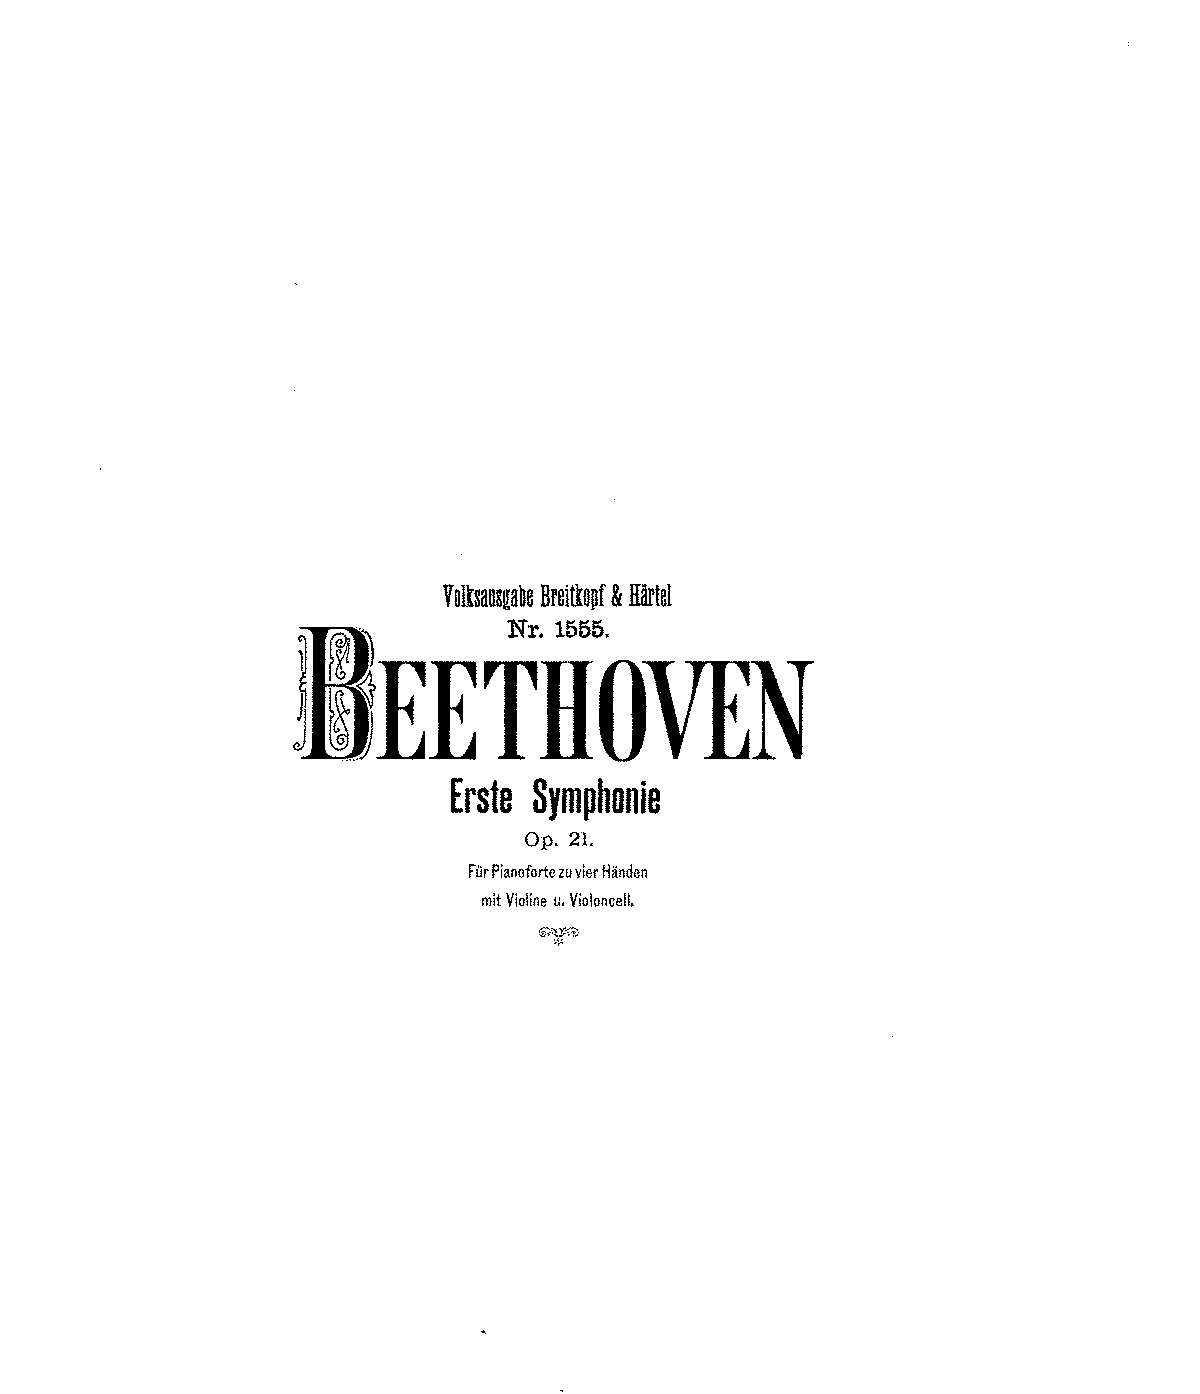 PMLP01582-Beethoven Symphony1 arr piano 4hands vlvc Piano.pdf